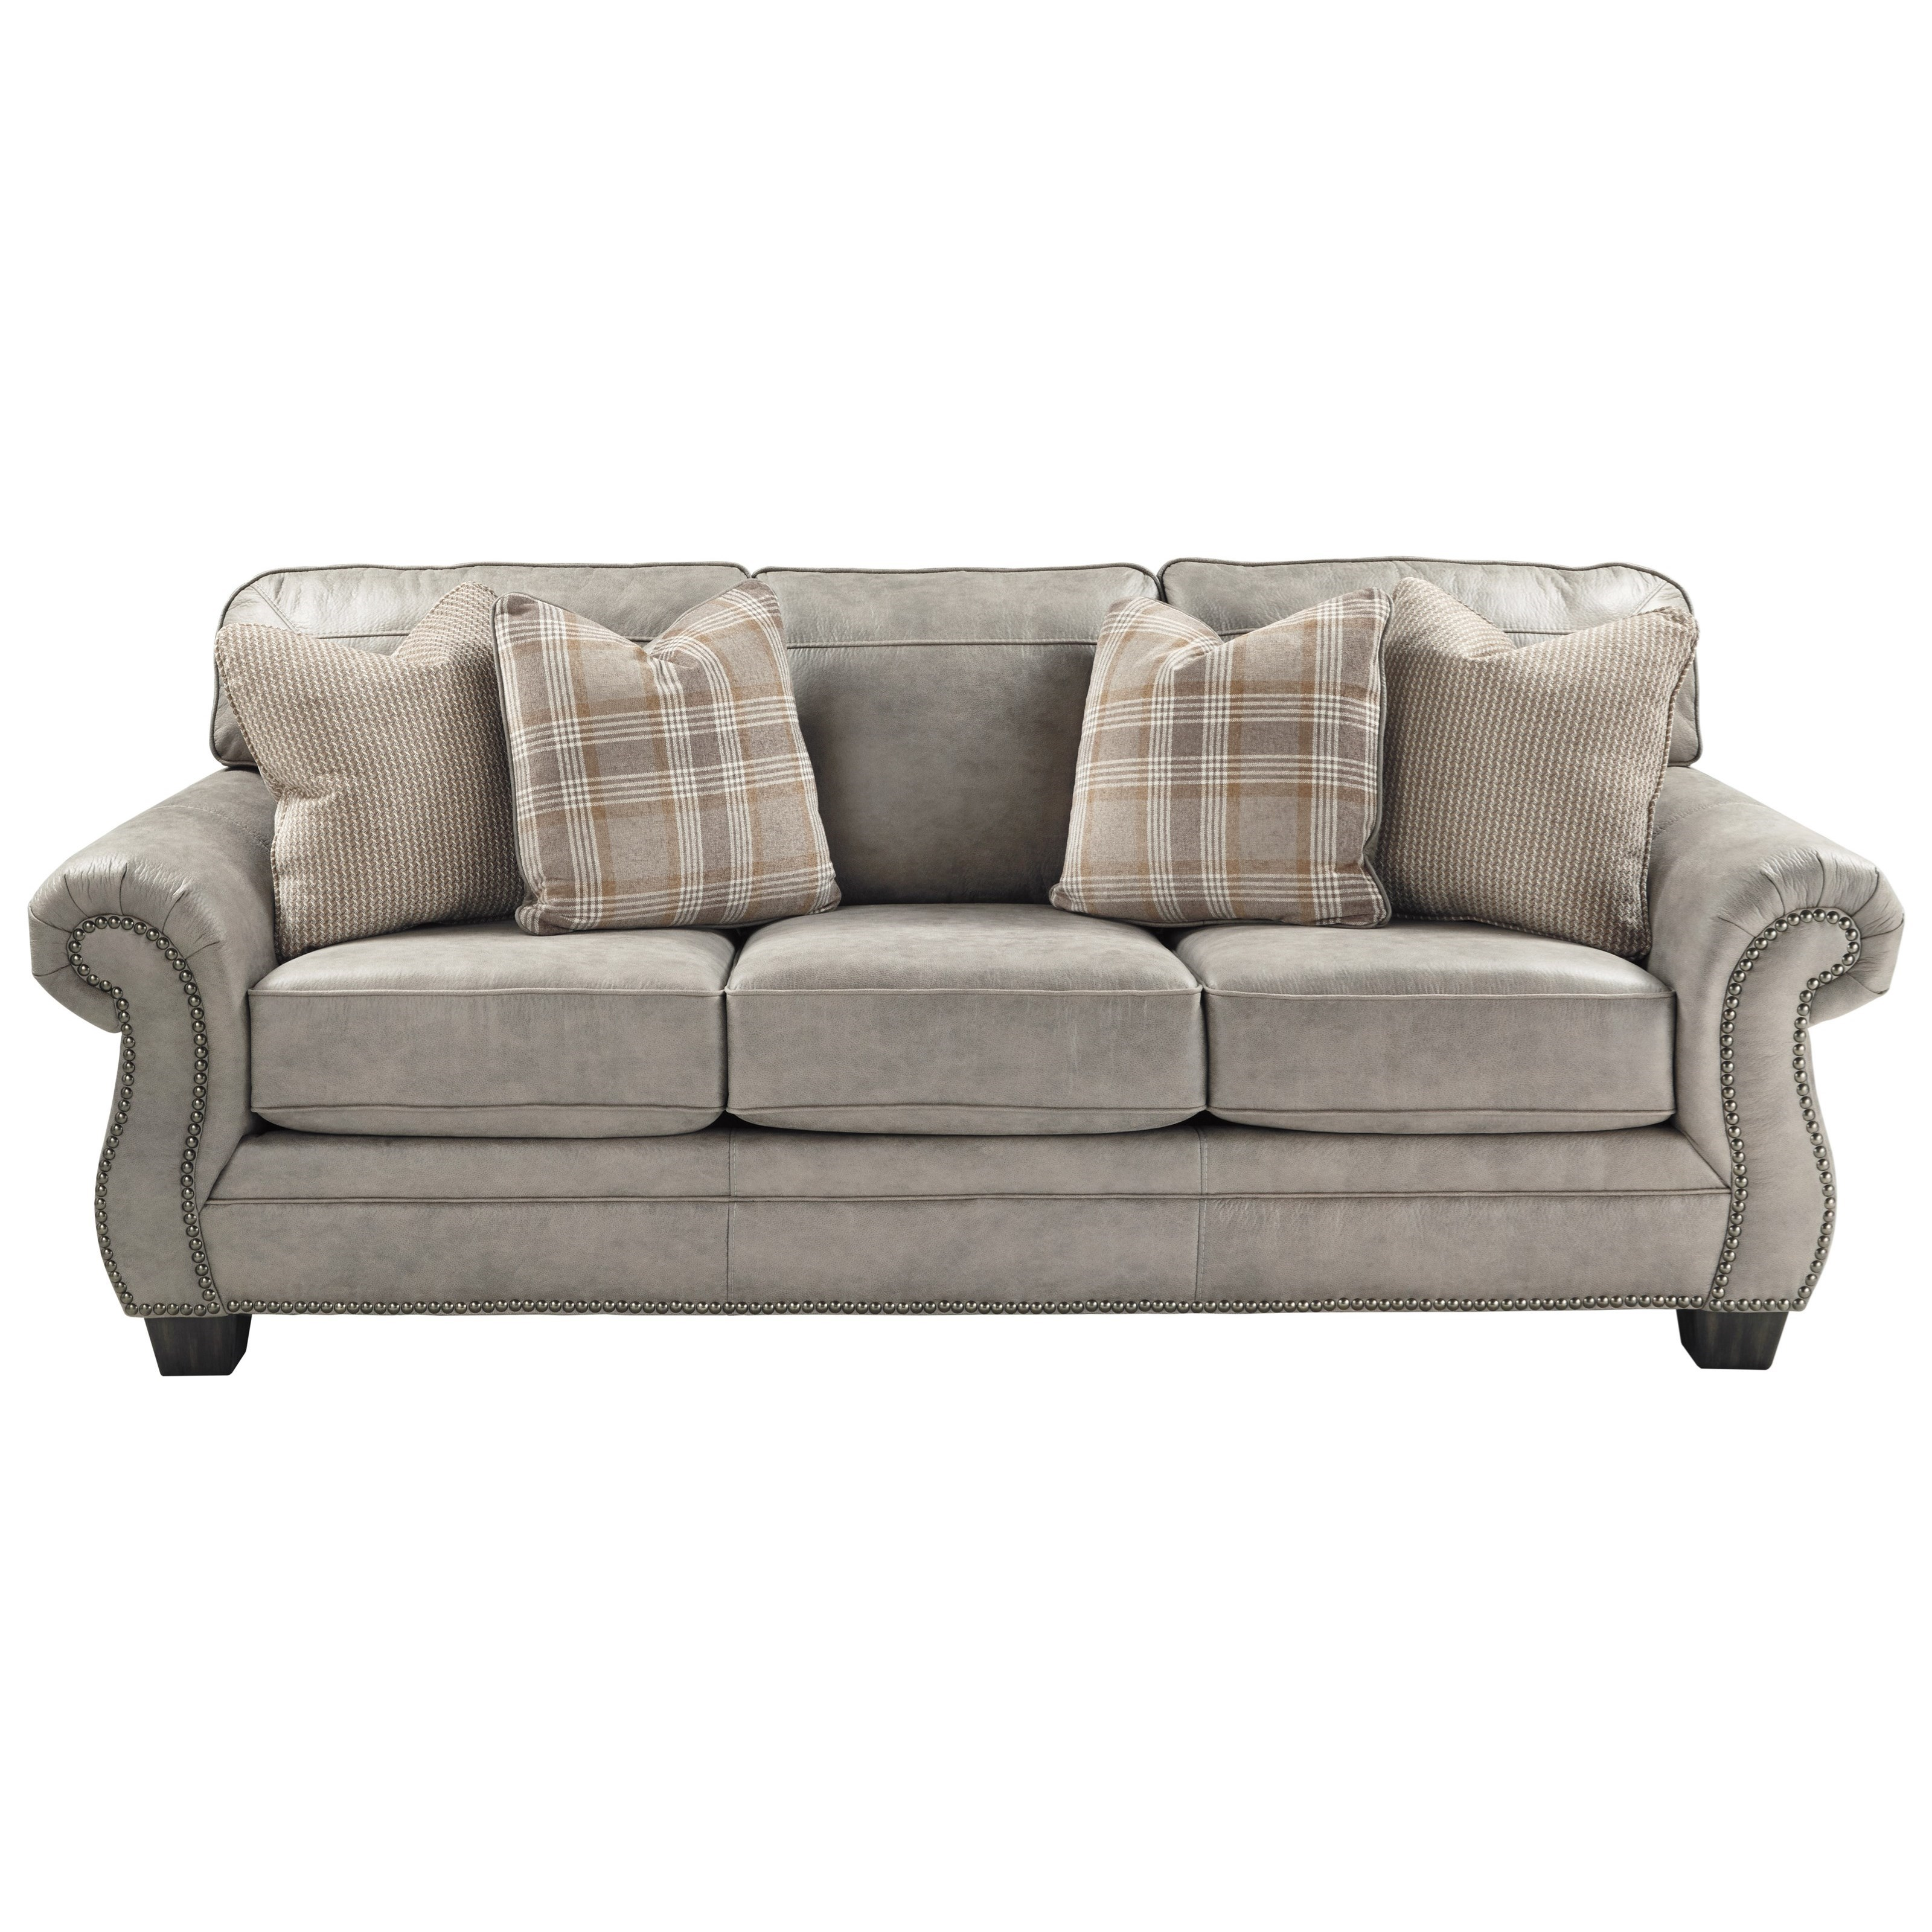 Olsberg Sofa by Signature Design by Ashley at Zak's Warehouse Clearance Center